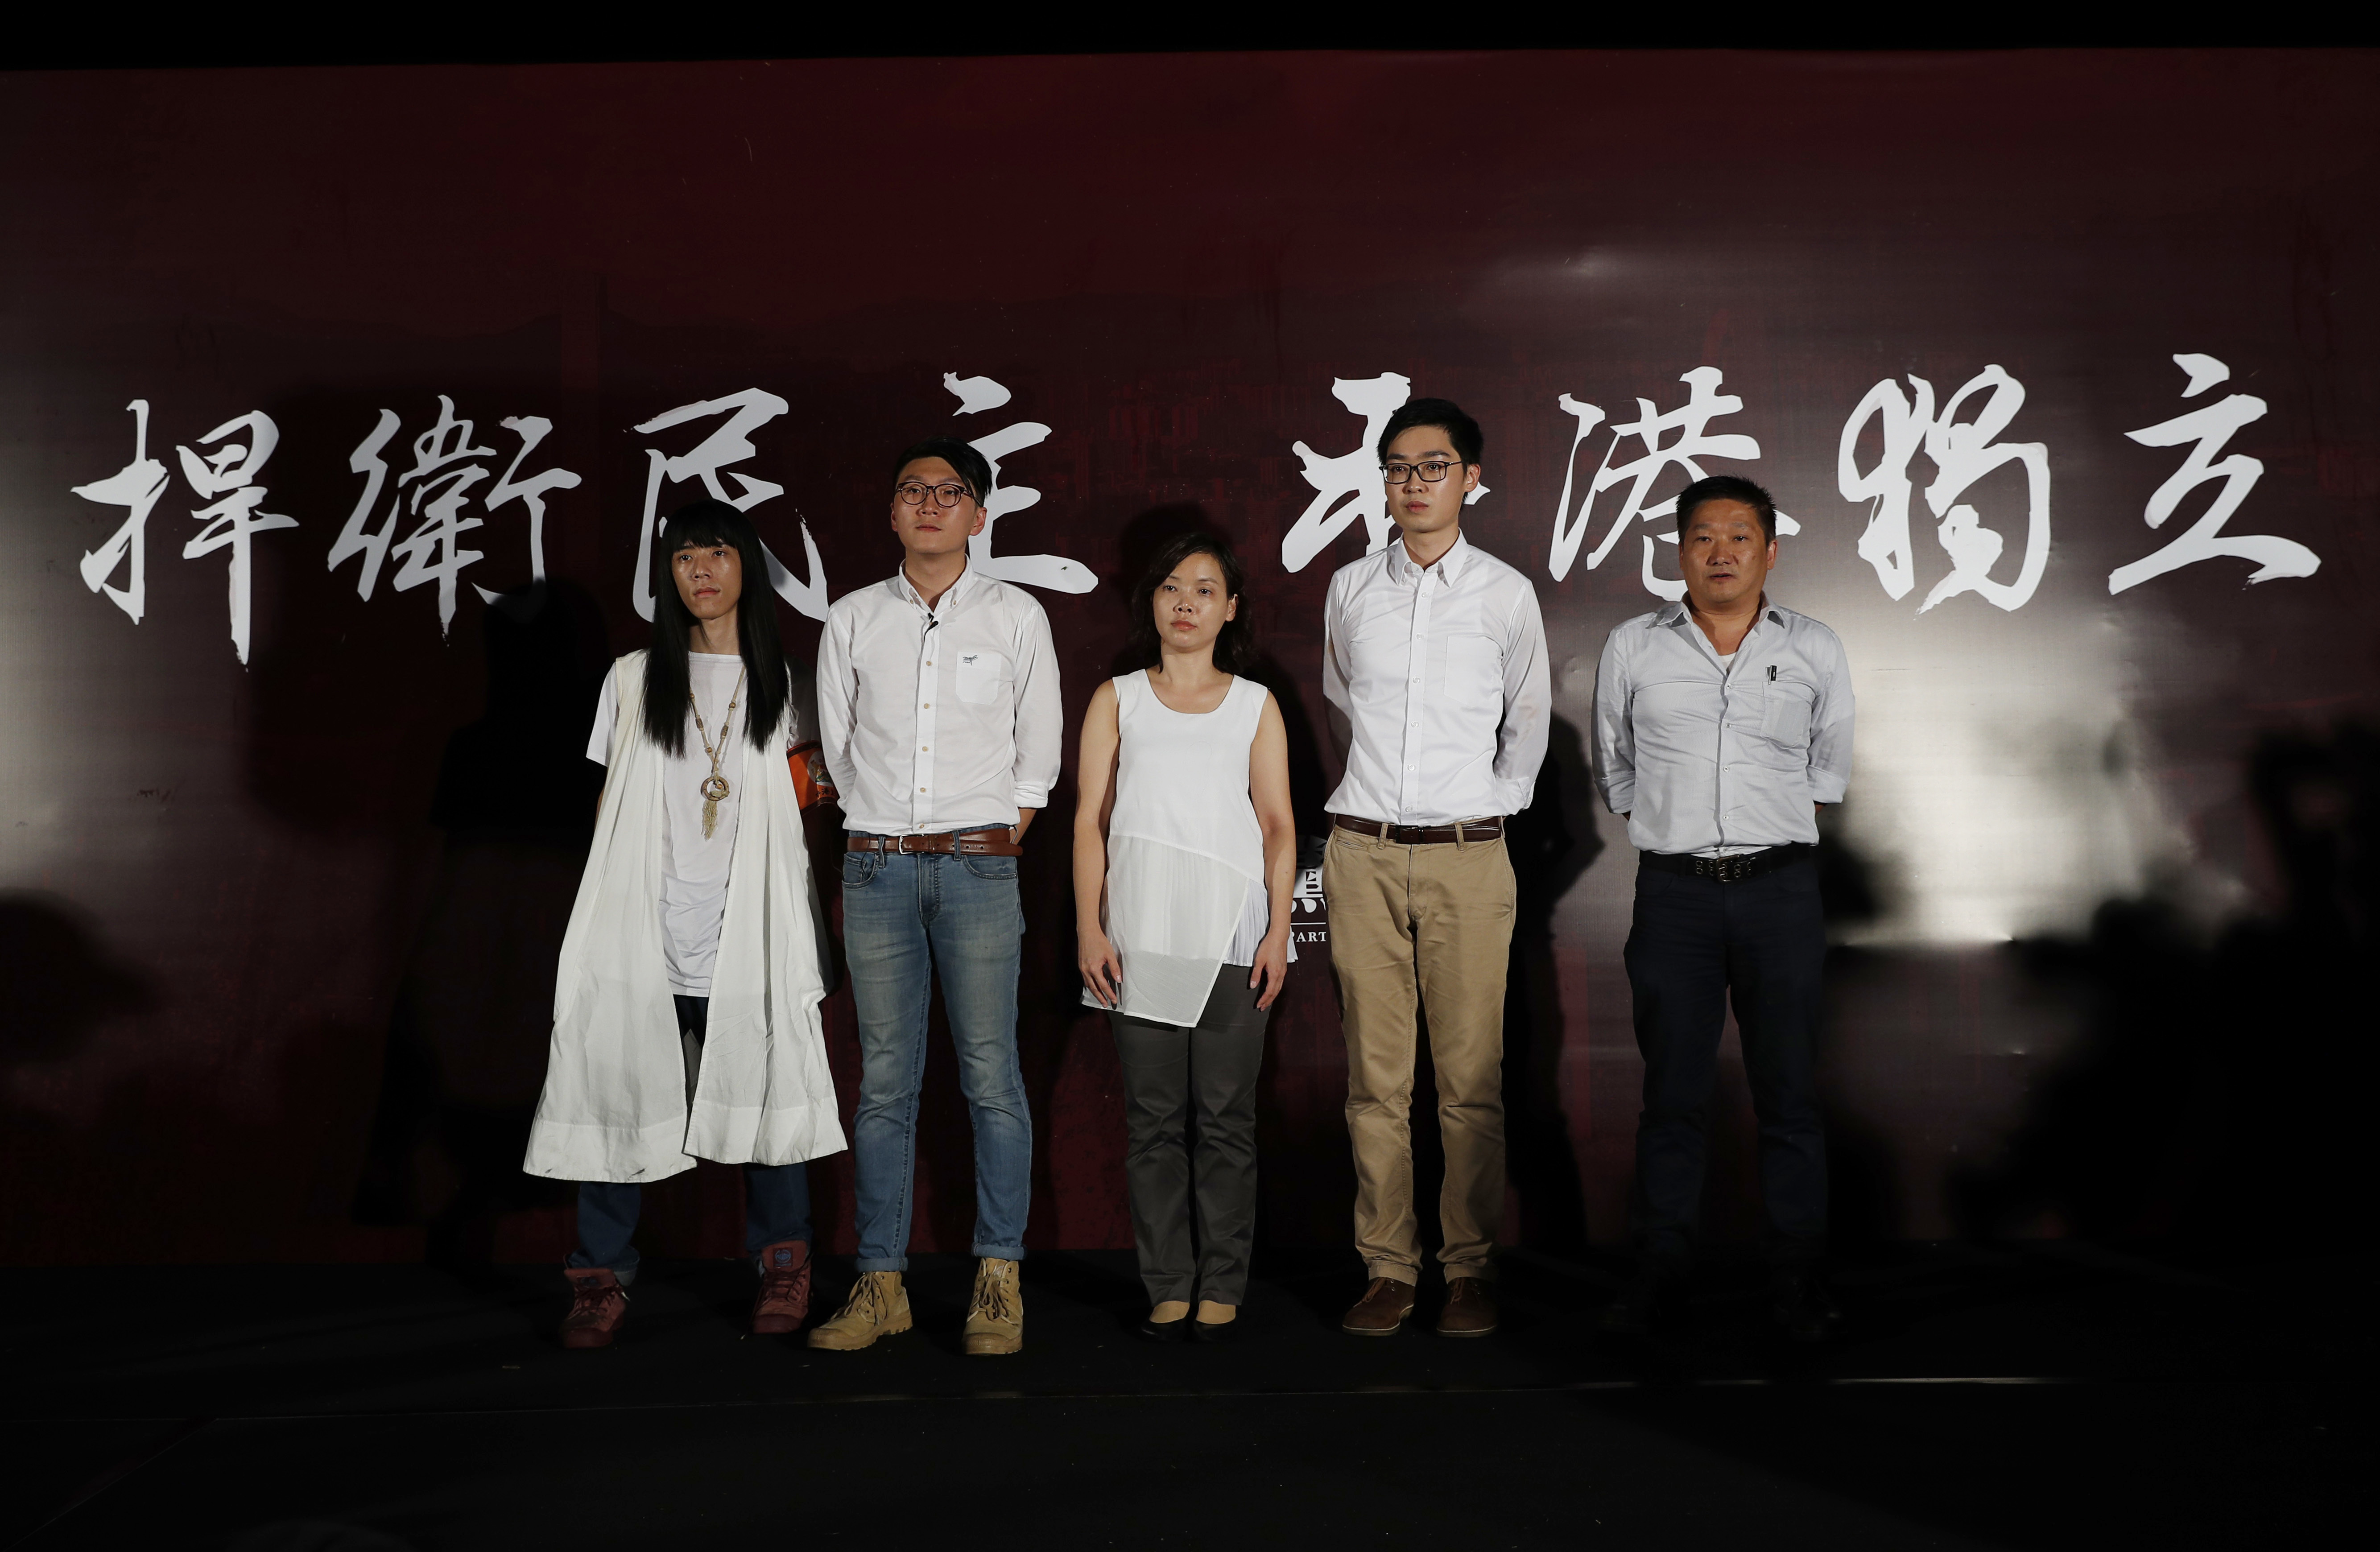 Five candidates who were rejected from participating in the Legislative Council elections attend a rally in Hong Kong on Aug. 5, 2016.